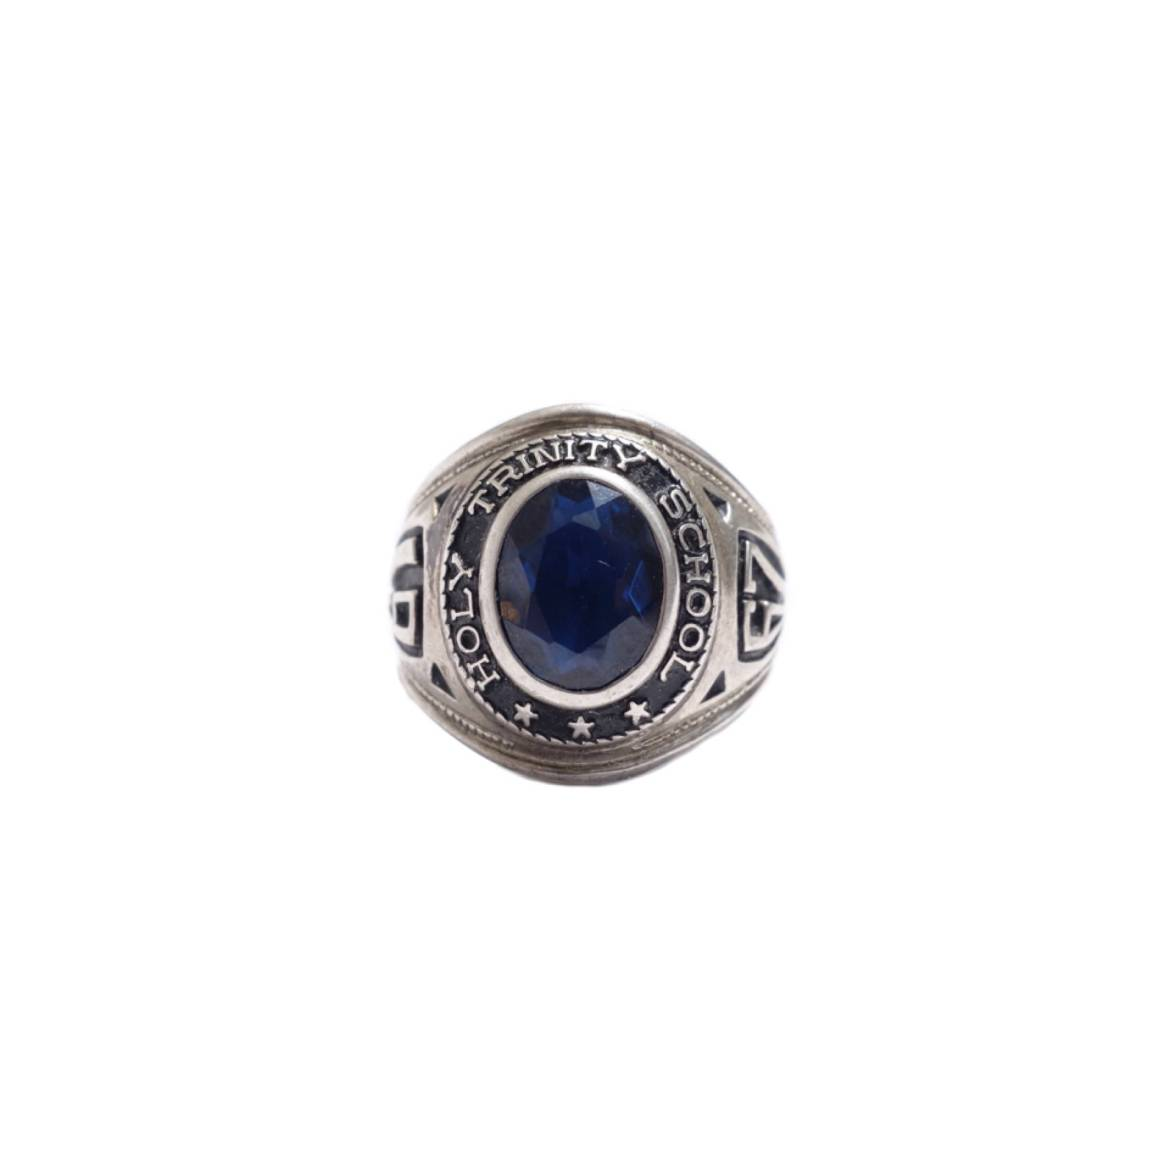 Vintage College Ring vintage styling blog